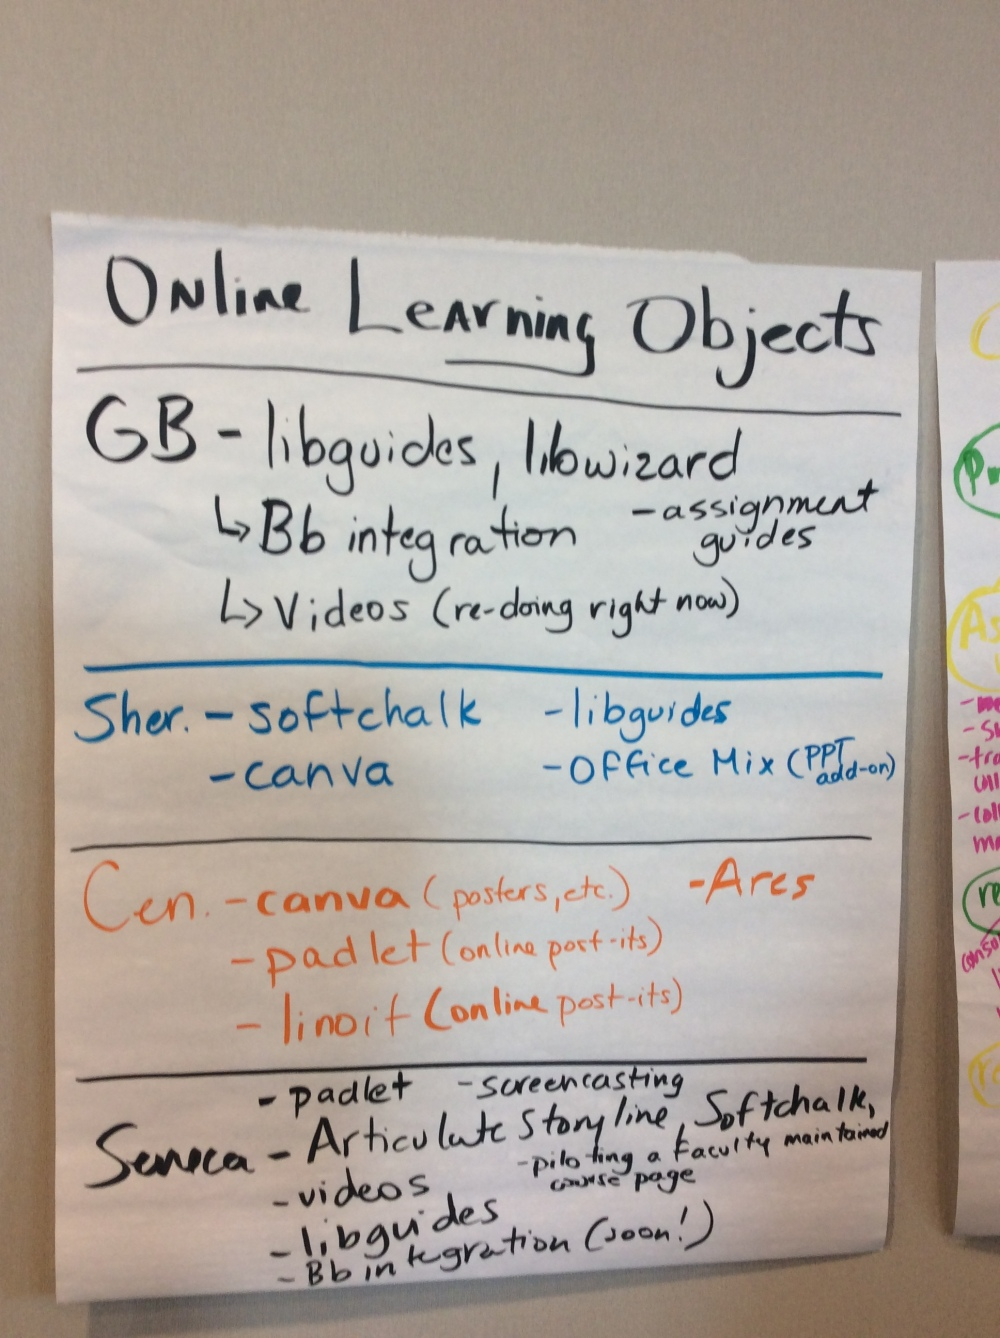 Online Learning Objects discussion.